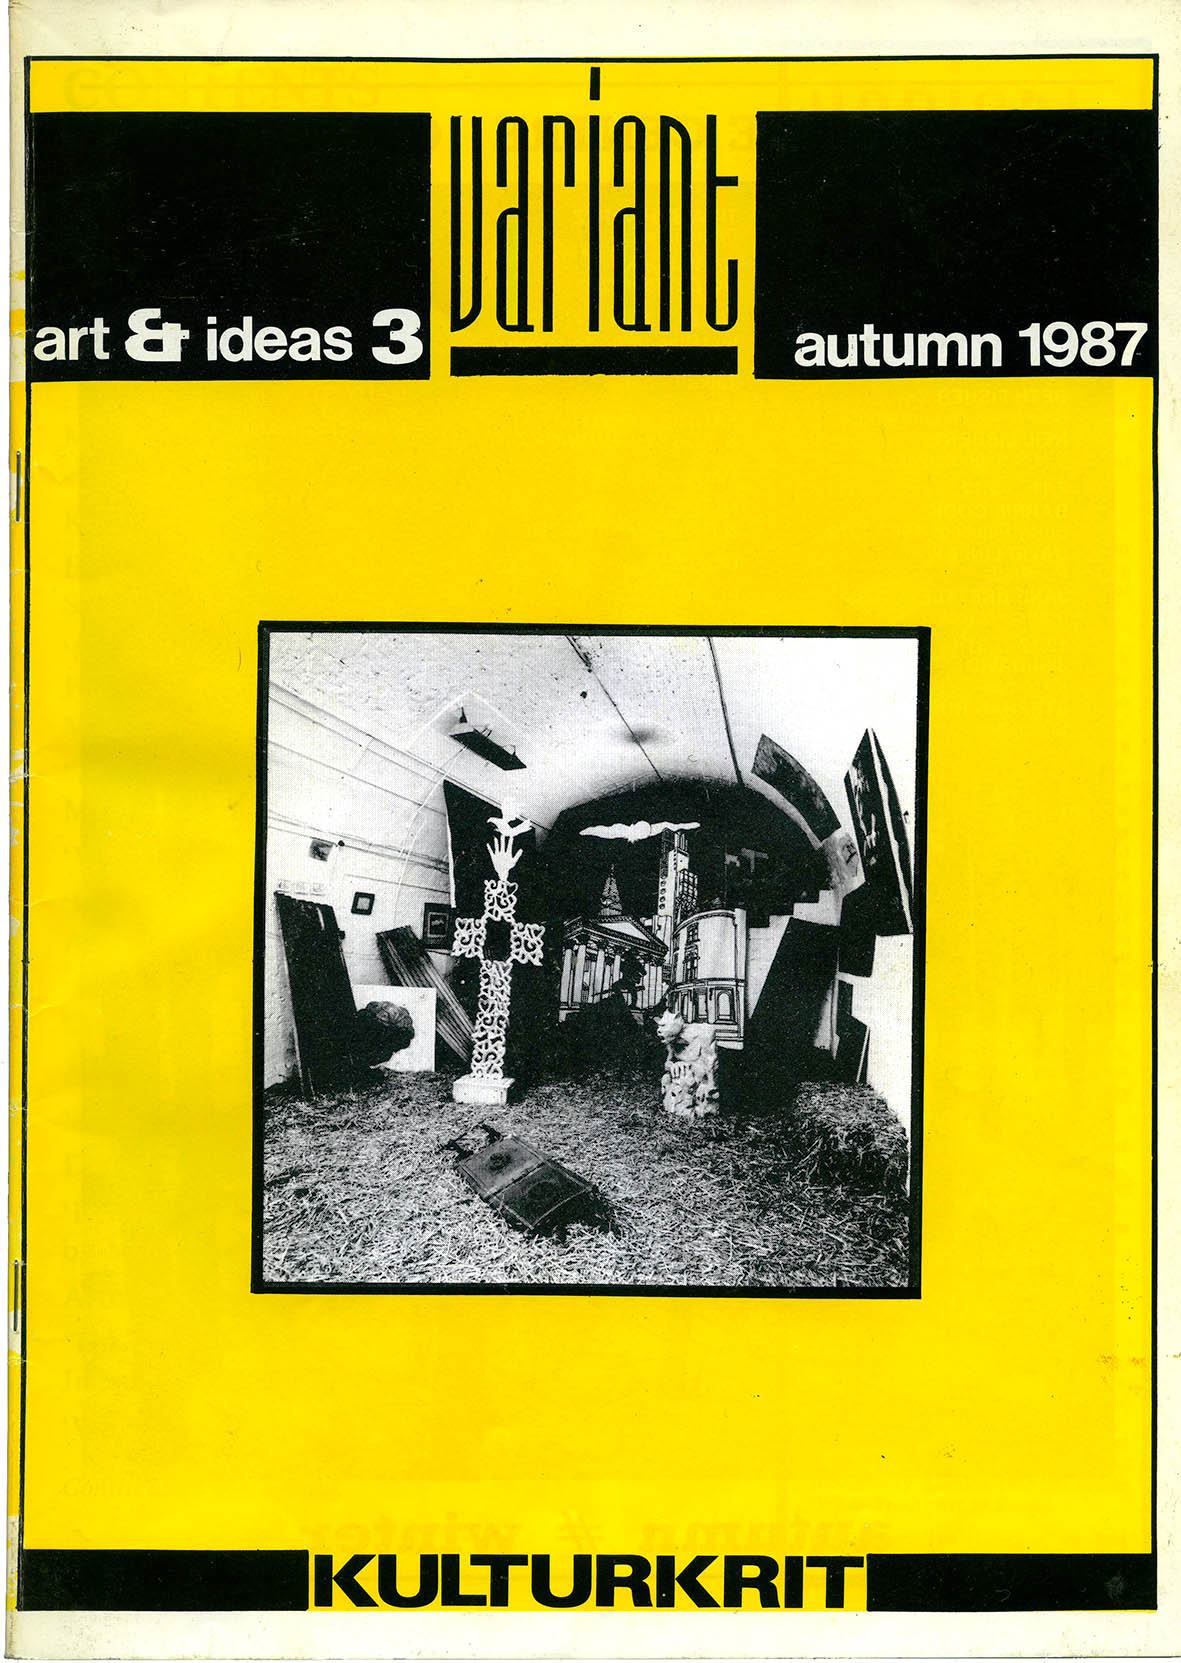 White Trash: Art in Ruins   Cover feature by Malcolm Dickson Variant  No 3  Autumn 1987 pdf download